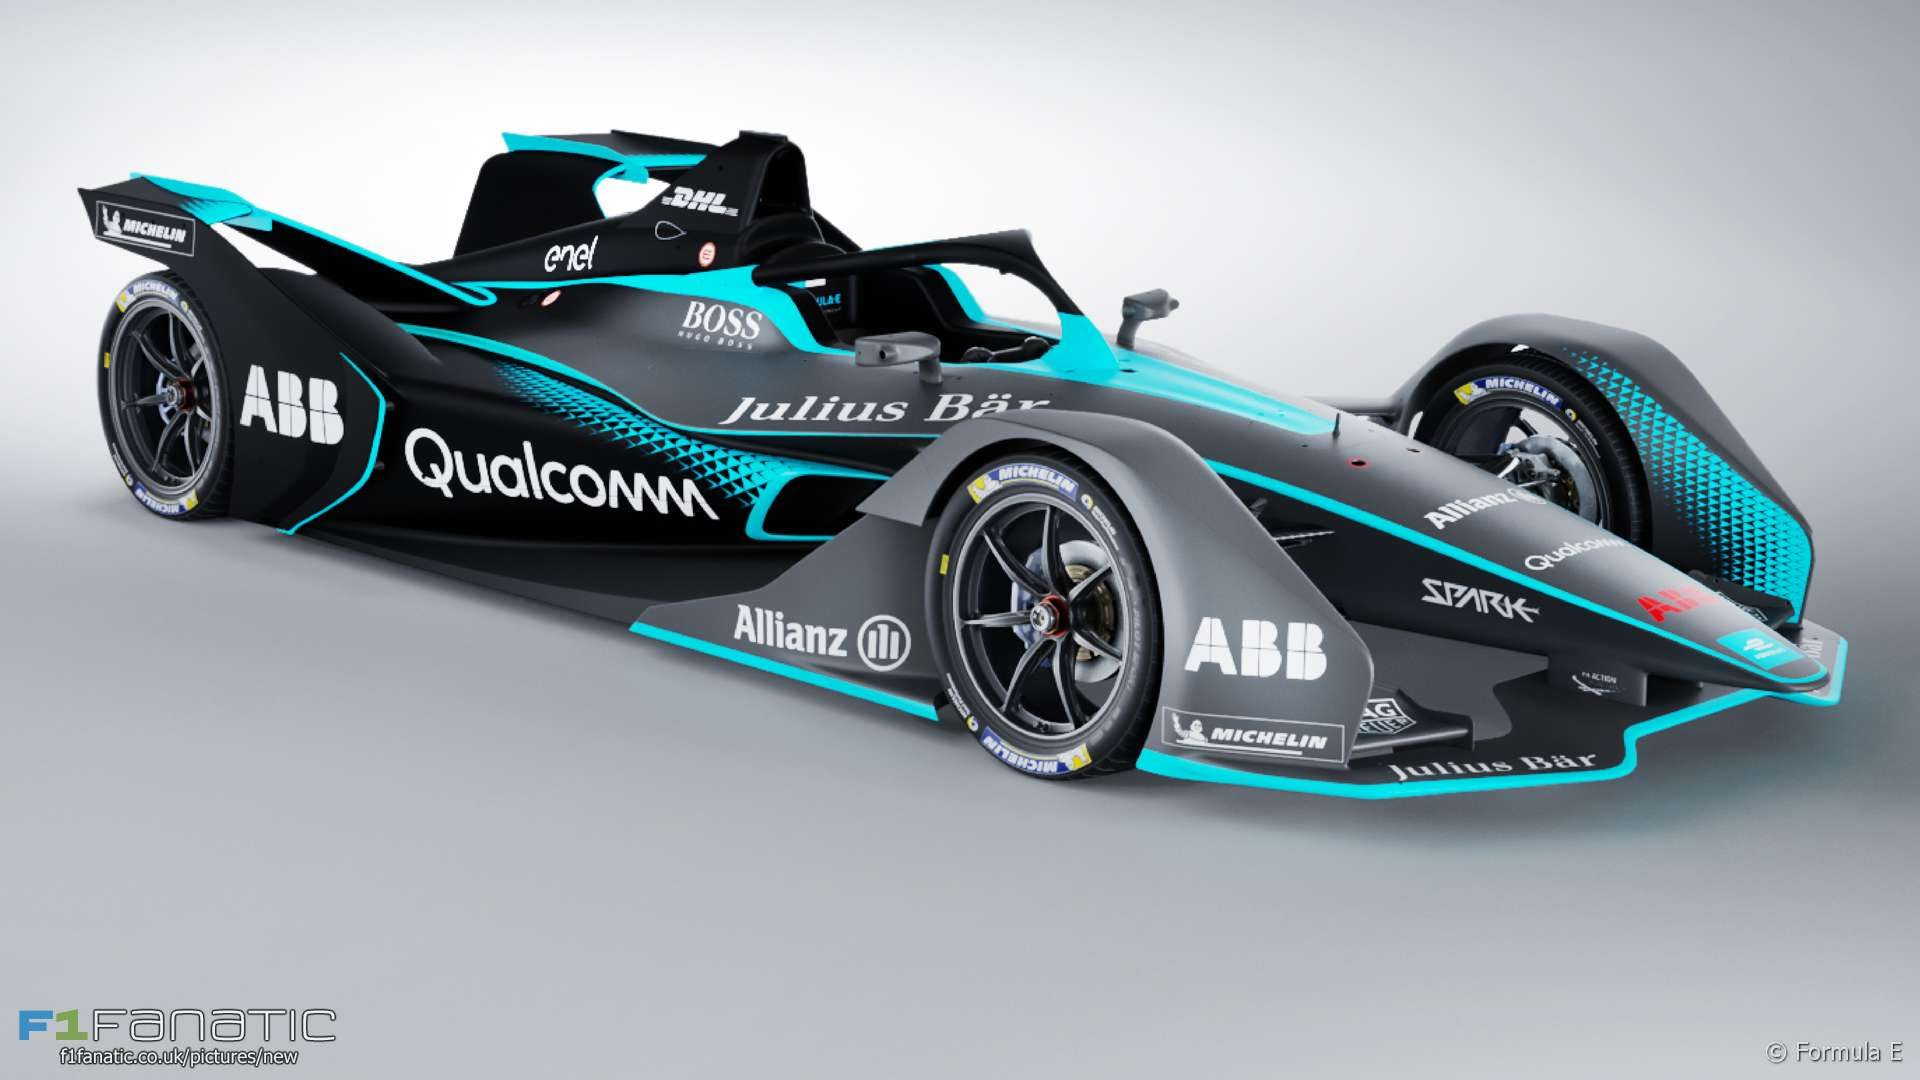 Compressed Air Car >> Pictures: Formula E reveals new car for 2018-19 season - F1 Fanatic